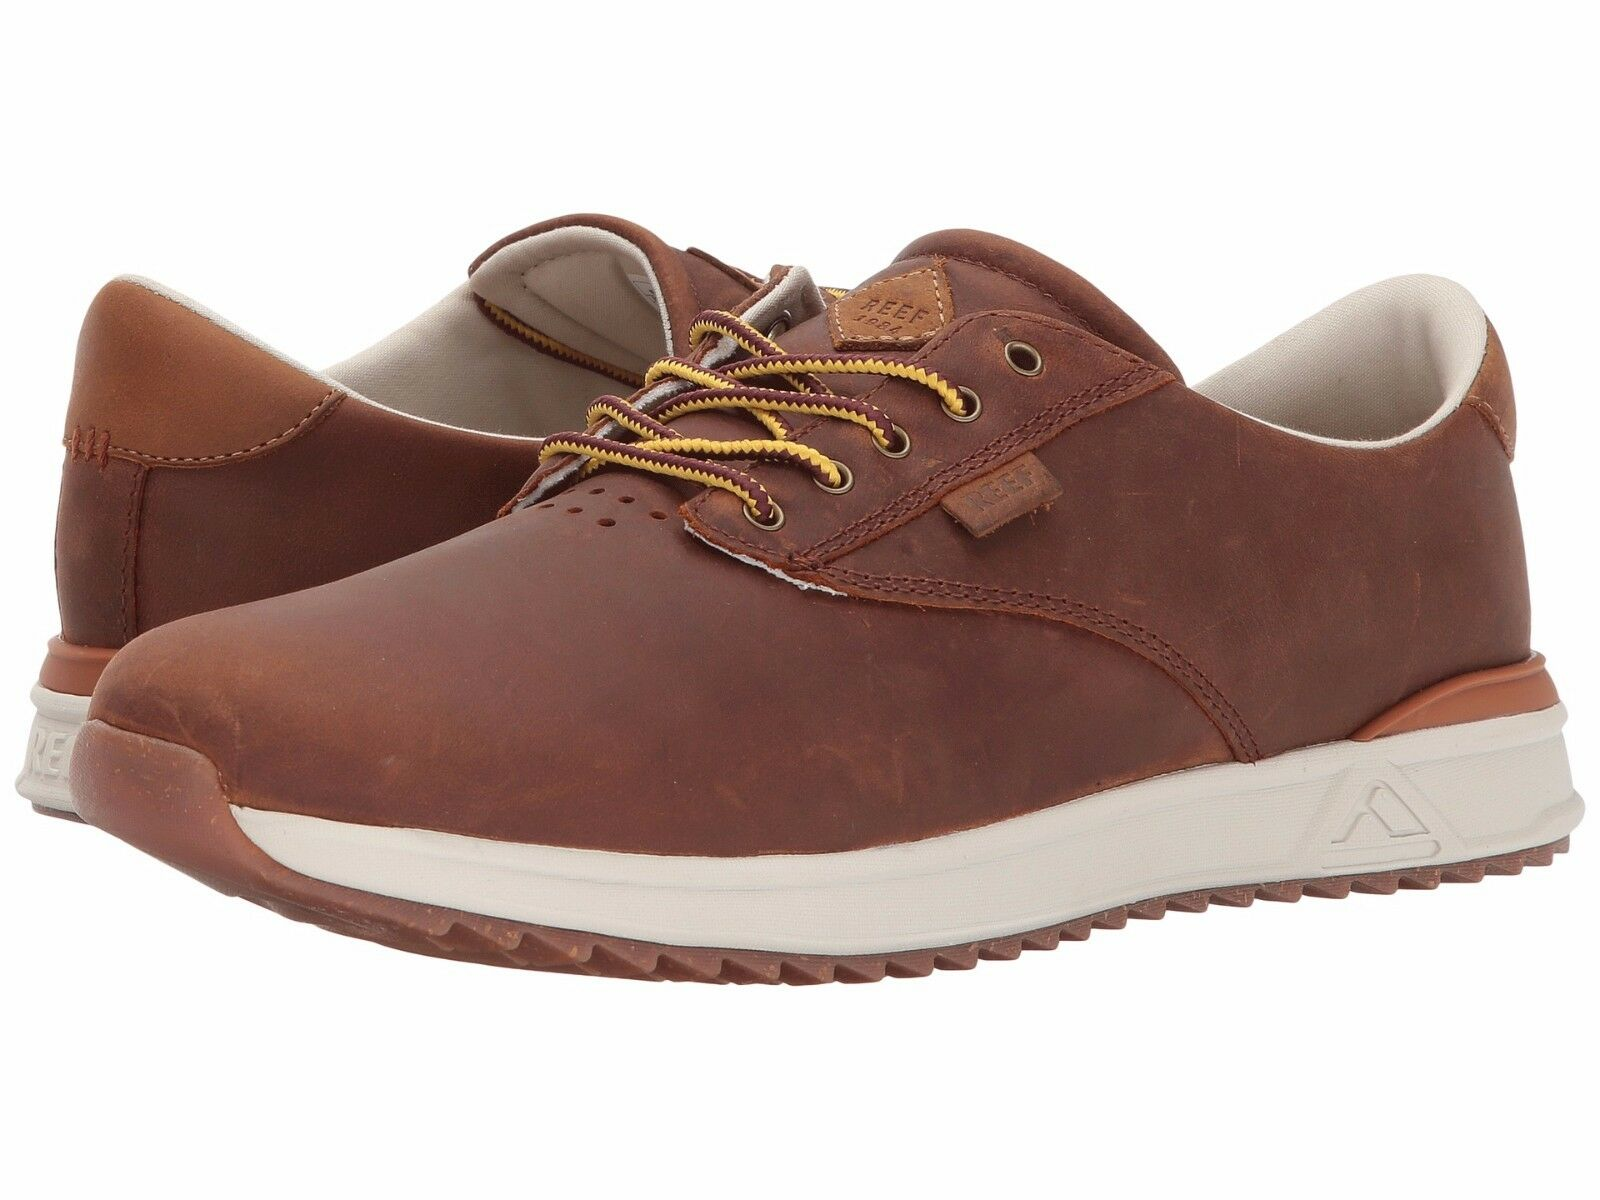 Men's shoes Reef Mission Leather Lace Up Fashion Sneaker RF0A363S Brown New